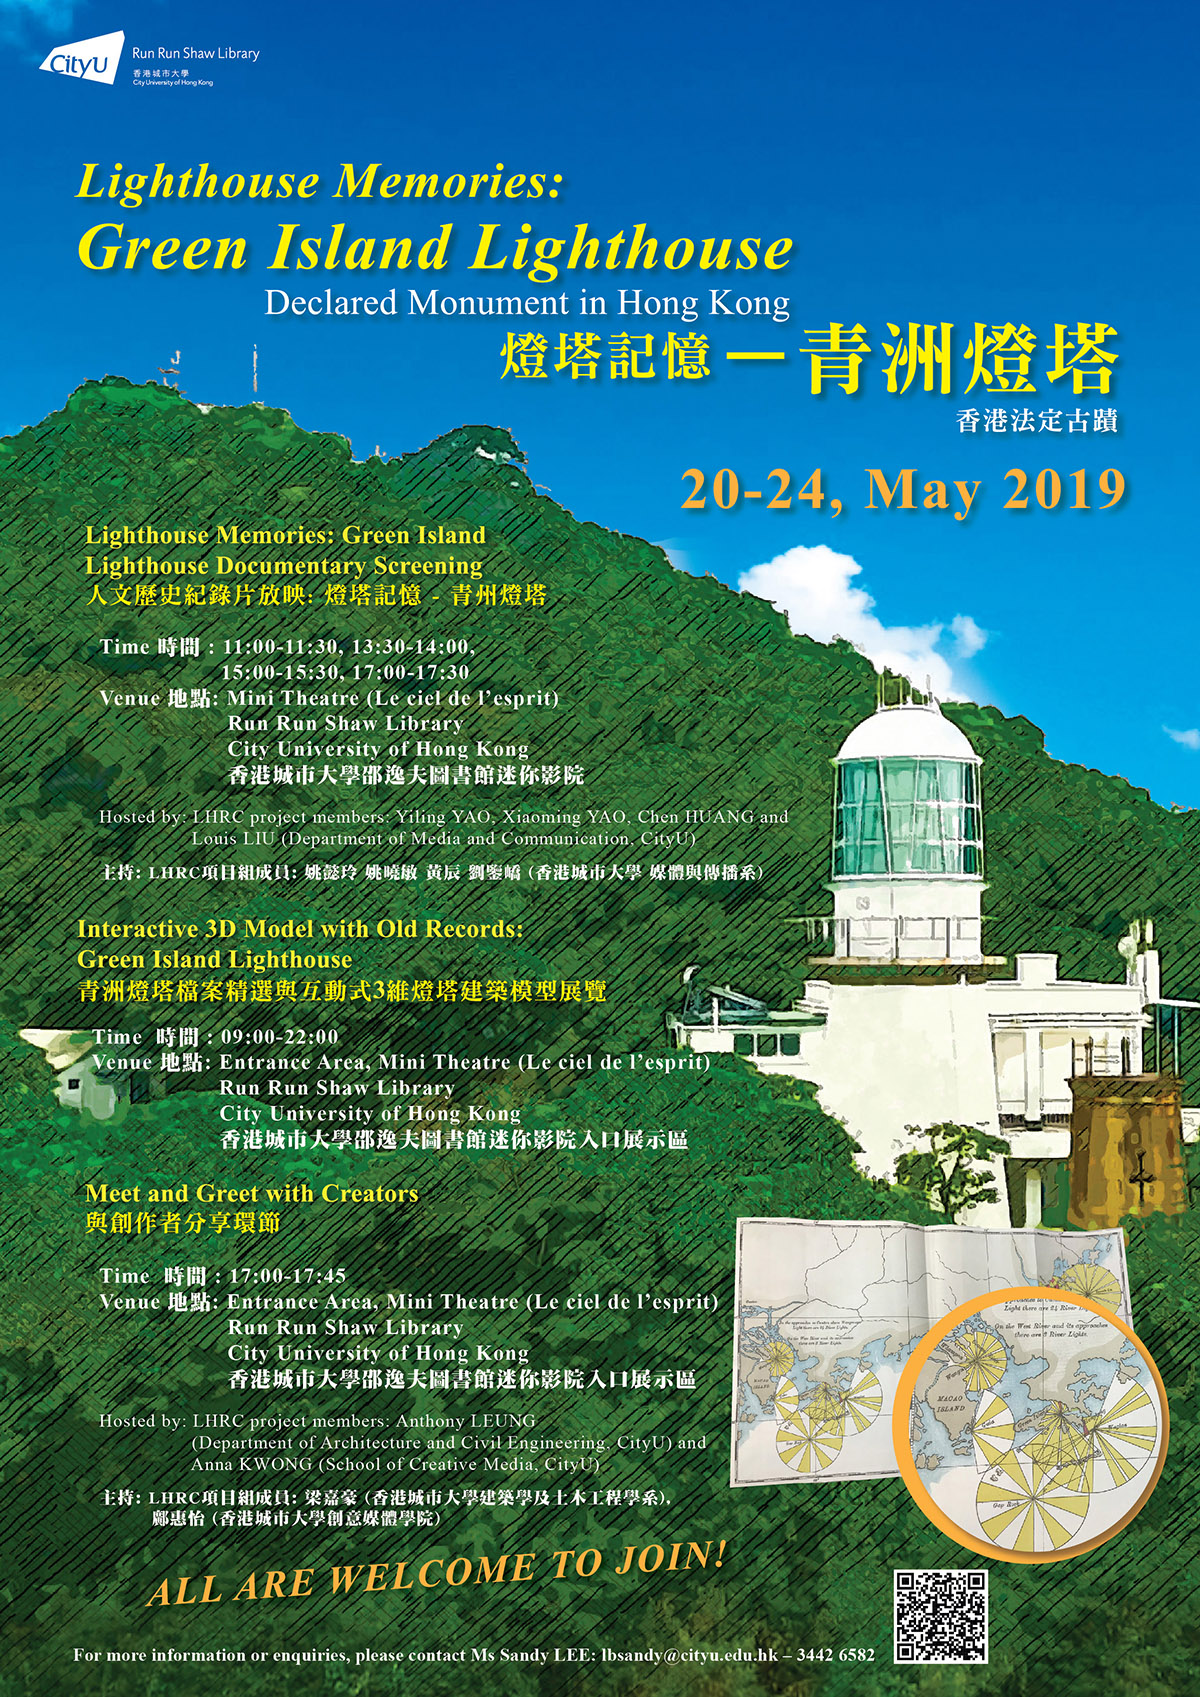 Lighthouse Memories: Green Island Lighthouse Declared Monument in Hong Kong 20-24 May 2019 Lighthouse Memories: Green Island Lighthouse Documentary Screening Time: 11:00-11:30, 13:30-14:00, 15:00-15:30, 17:00-17:30 Venue: Mini Theatre, Run Run Shaw Library, City University of Hong Kong Hosted by: LHRC project members: Yiling YAO, Xiaoming YAO, Chen HUANG and Louis LIU (Department of Media and Communication, CityU) Interactive 3D Model with Old Records: Green Island Lighthouse Time: 09:00-22:00 Venue: Entrance Area, Mini Theatre, Run Run Shaw Library, City University of Hong Kong Meet and Greet with Creators Time: 17:00-17:45 Venue: Entrance Area, Mini Theatre, Run Run Shaw Library, City University of Hong Kong Hosted by: LHRC projector members: Anthony LEUNG (Department of Architecture and Civil Engineering, CityU) and Anna KWONG (School of Creative Media, CityU) ALL ARE WELCOME TO JOIN! For more information or enquiries, please contact Ms Sandy LEE: lbsandy@cityu.edu.hk - 34426582